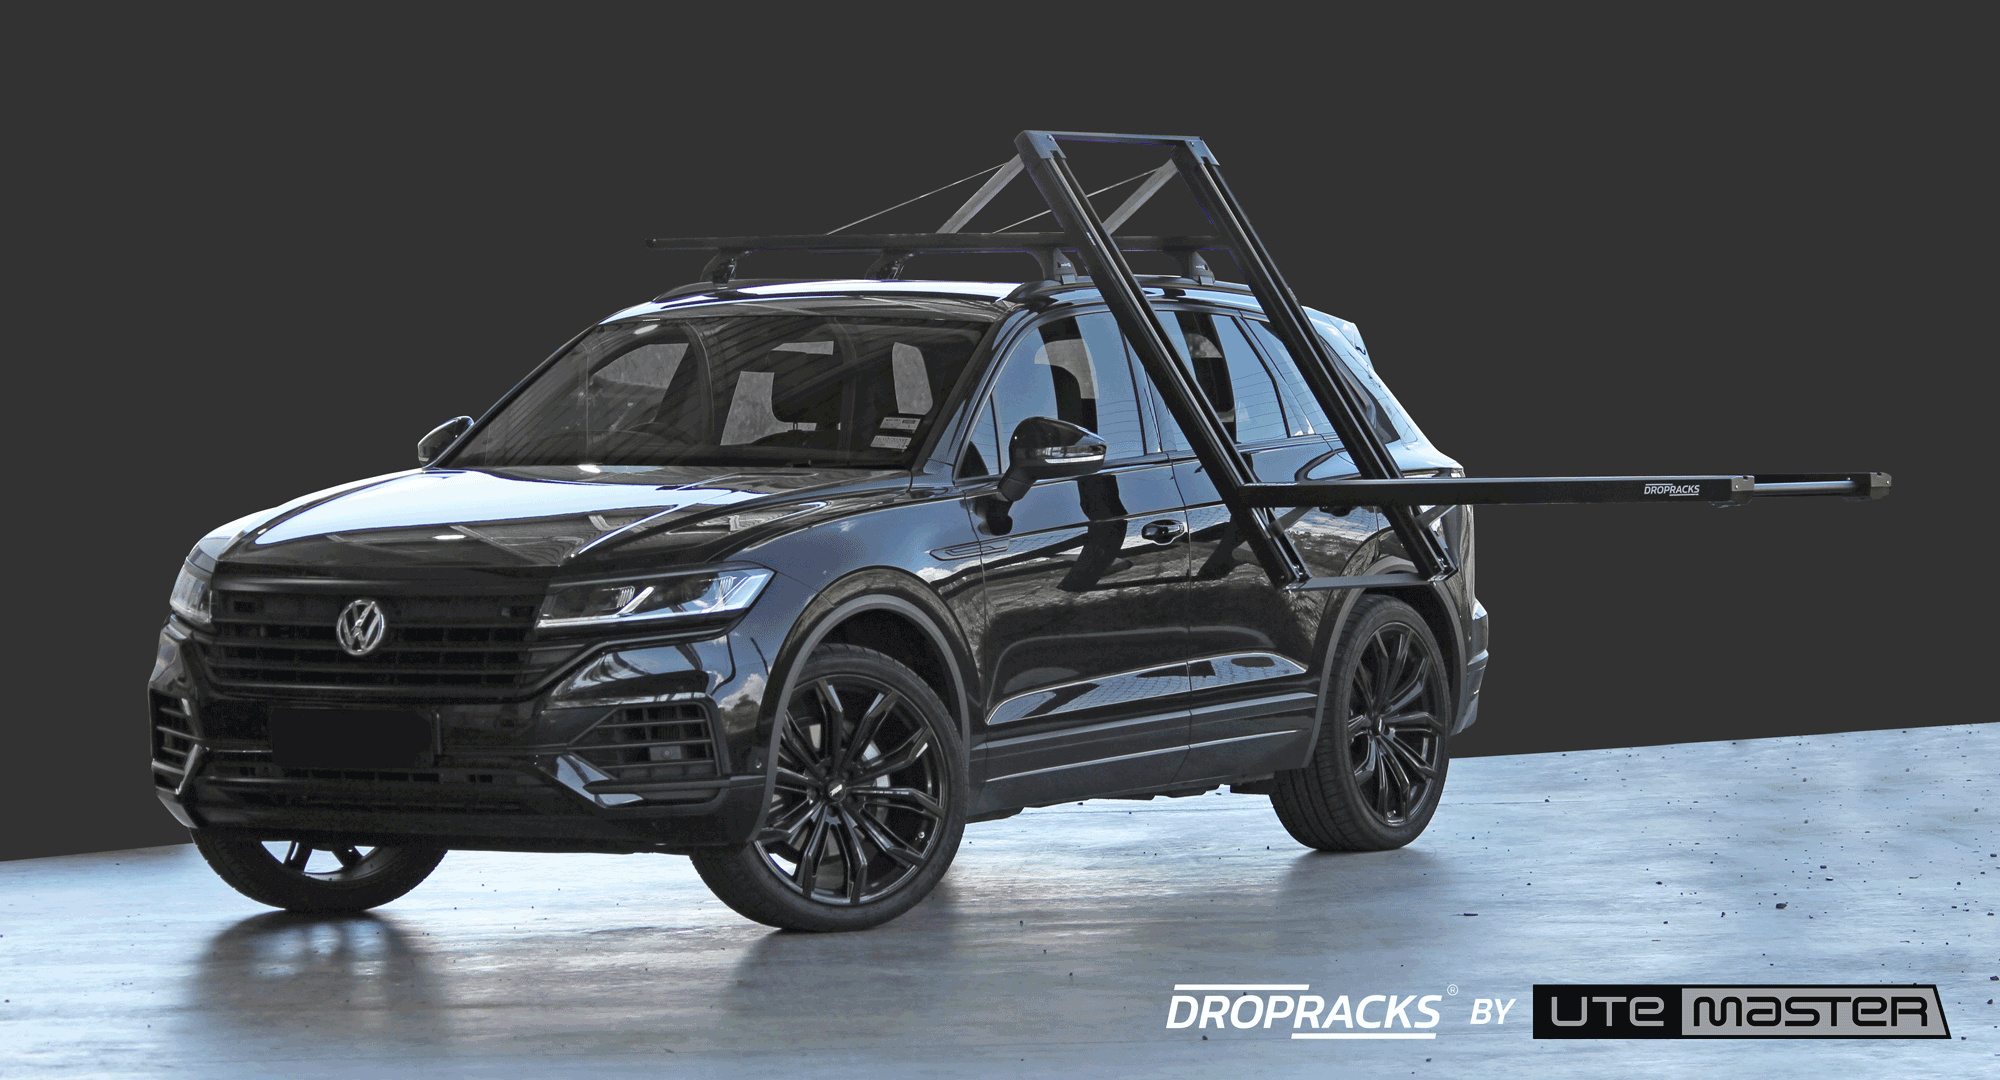 Volkswagen Touareg Roof Racks - Dropracks by Utemaster Lowerable Roof Rack Bike Carrier SUV